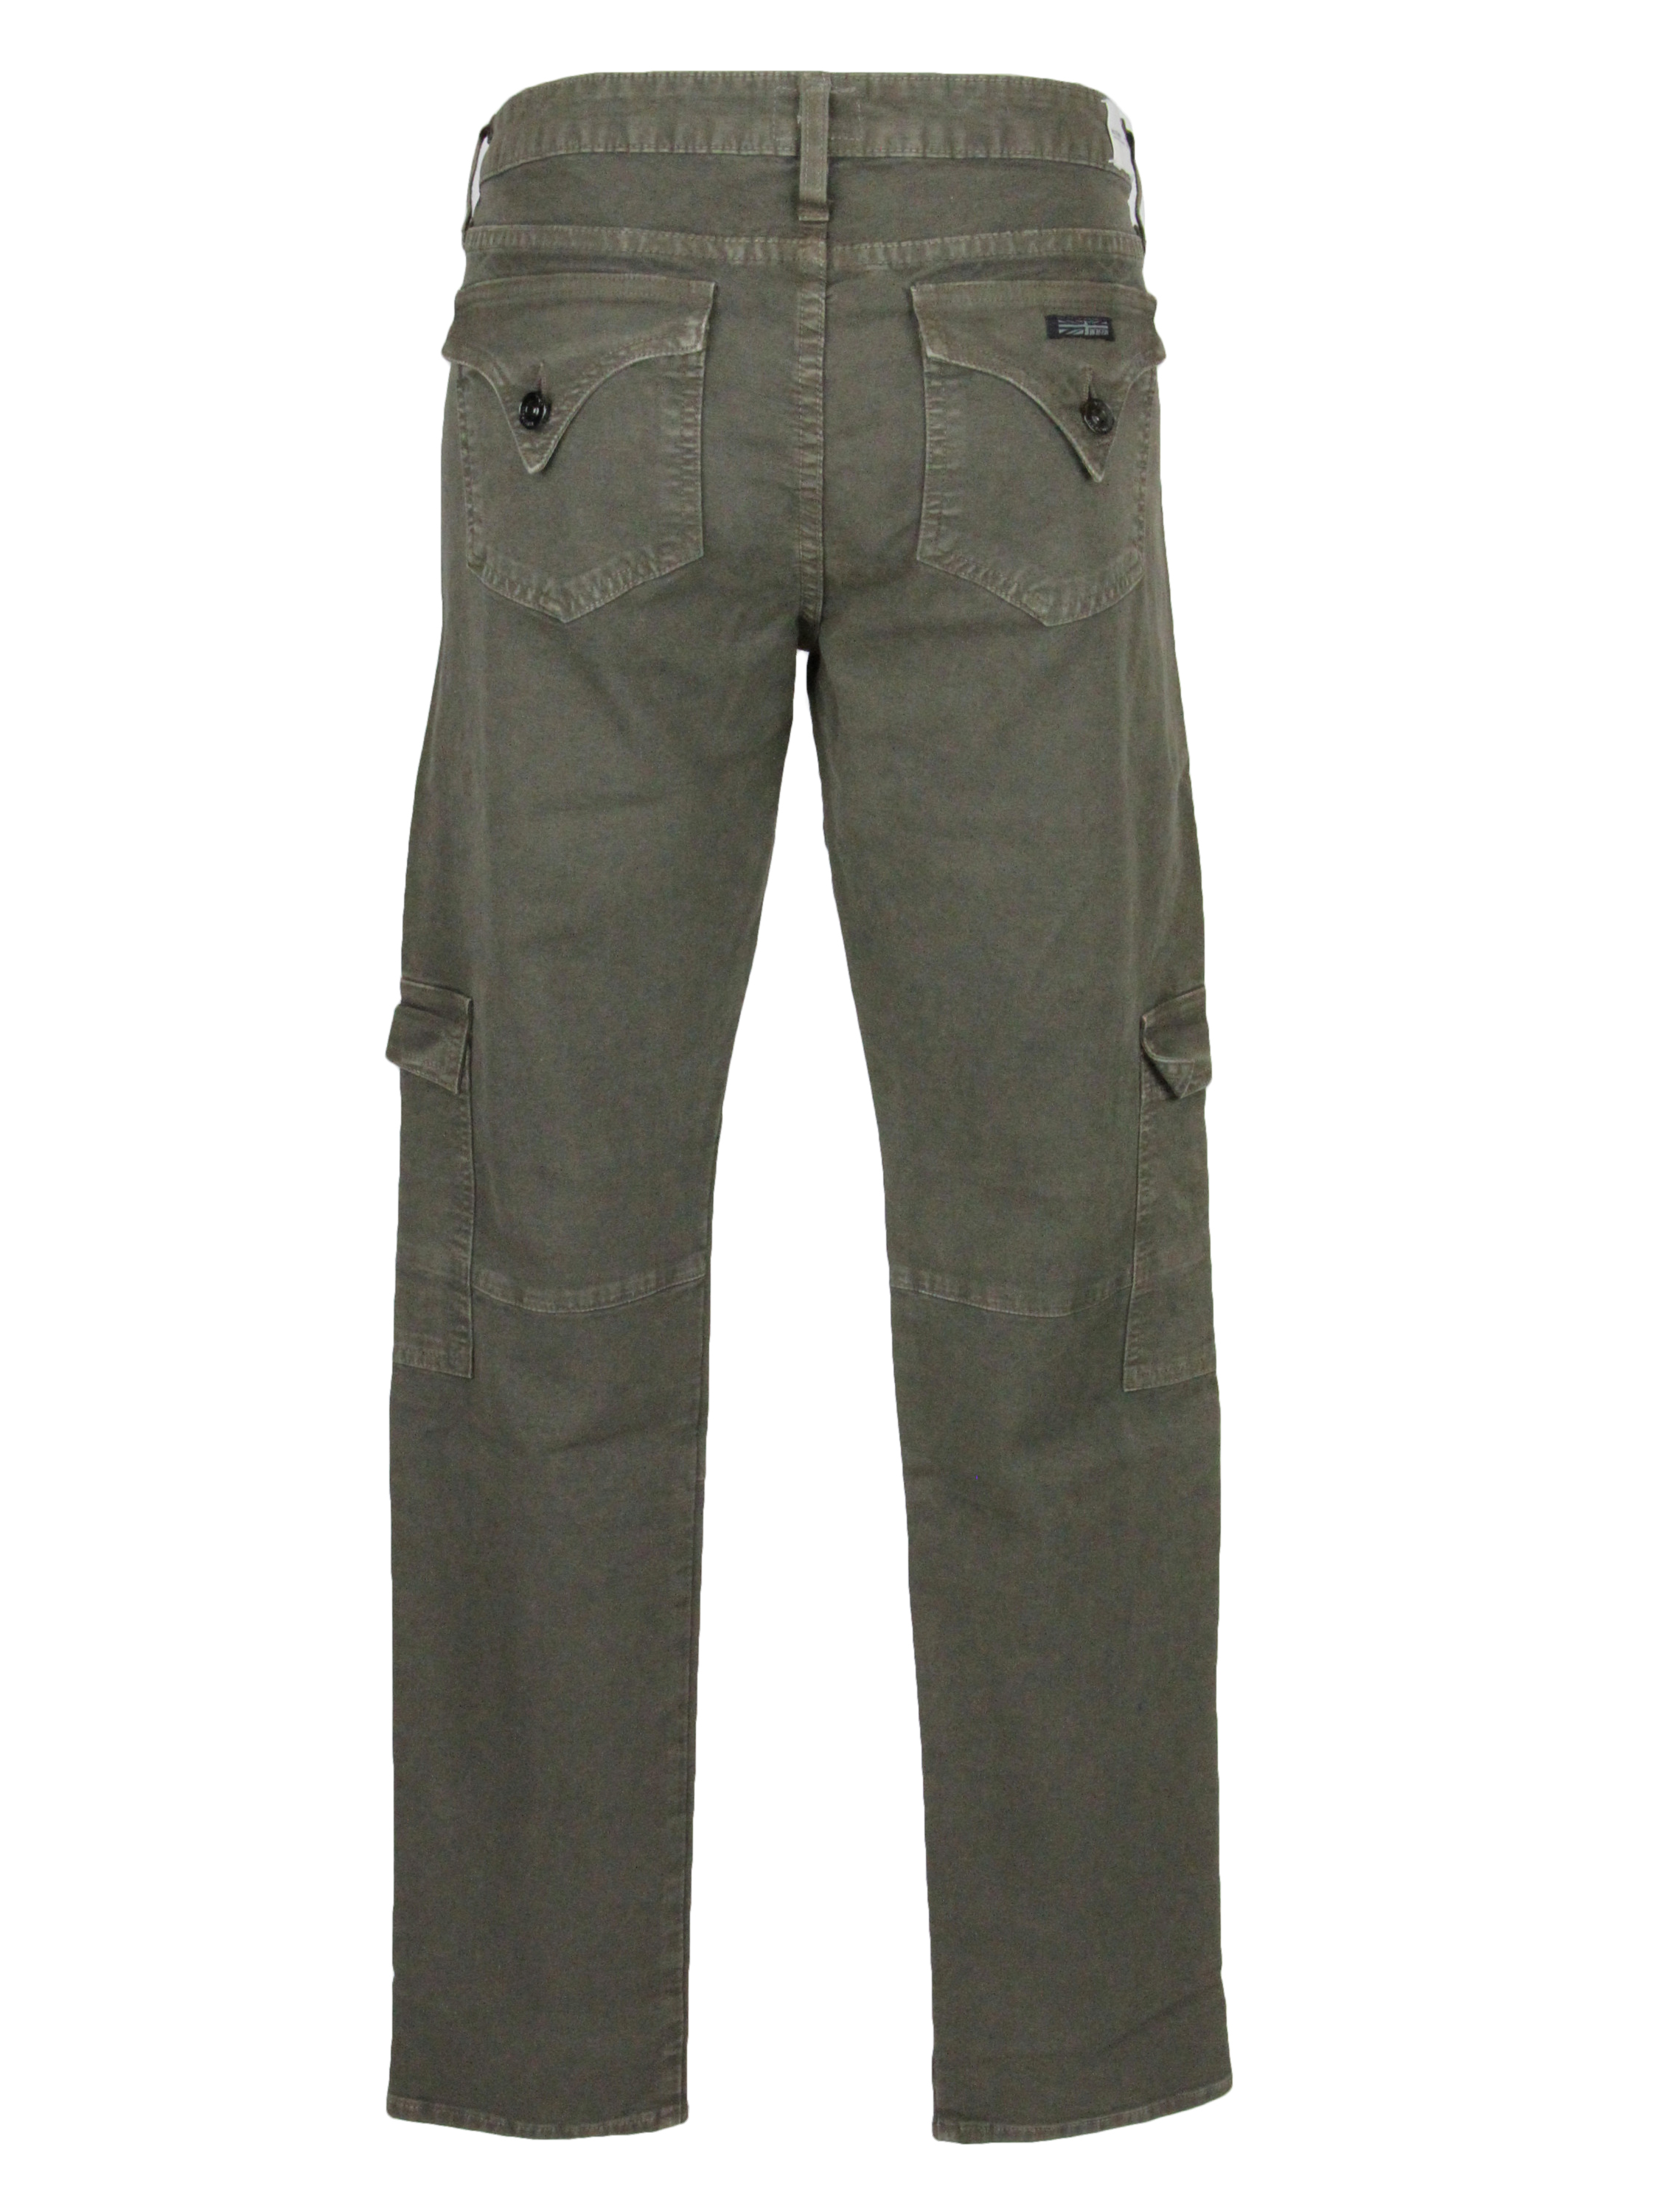 Cool Skinny Cargo Pant  Women39s Pants  THE LIMITED